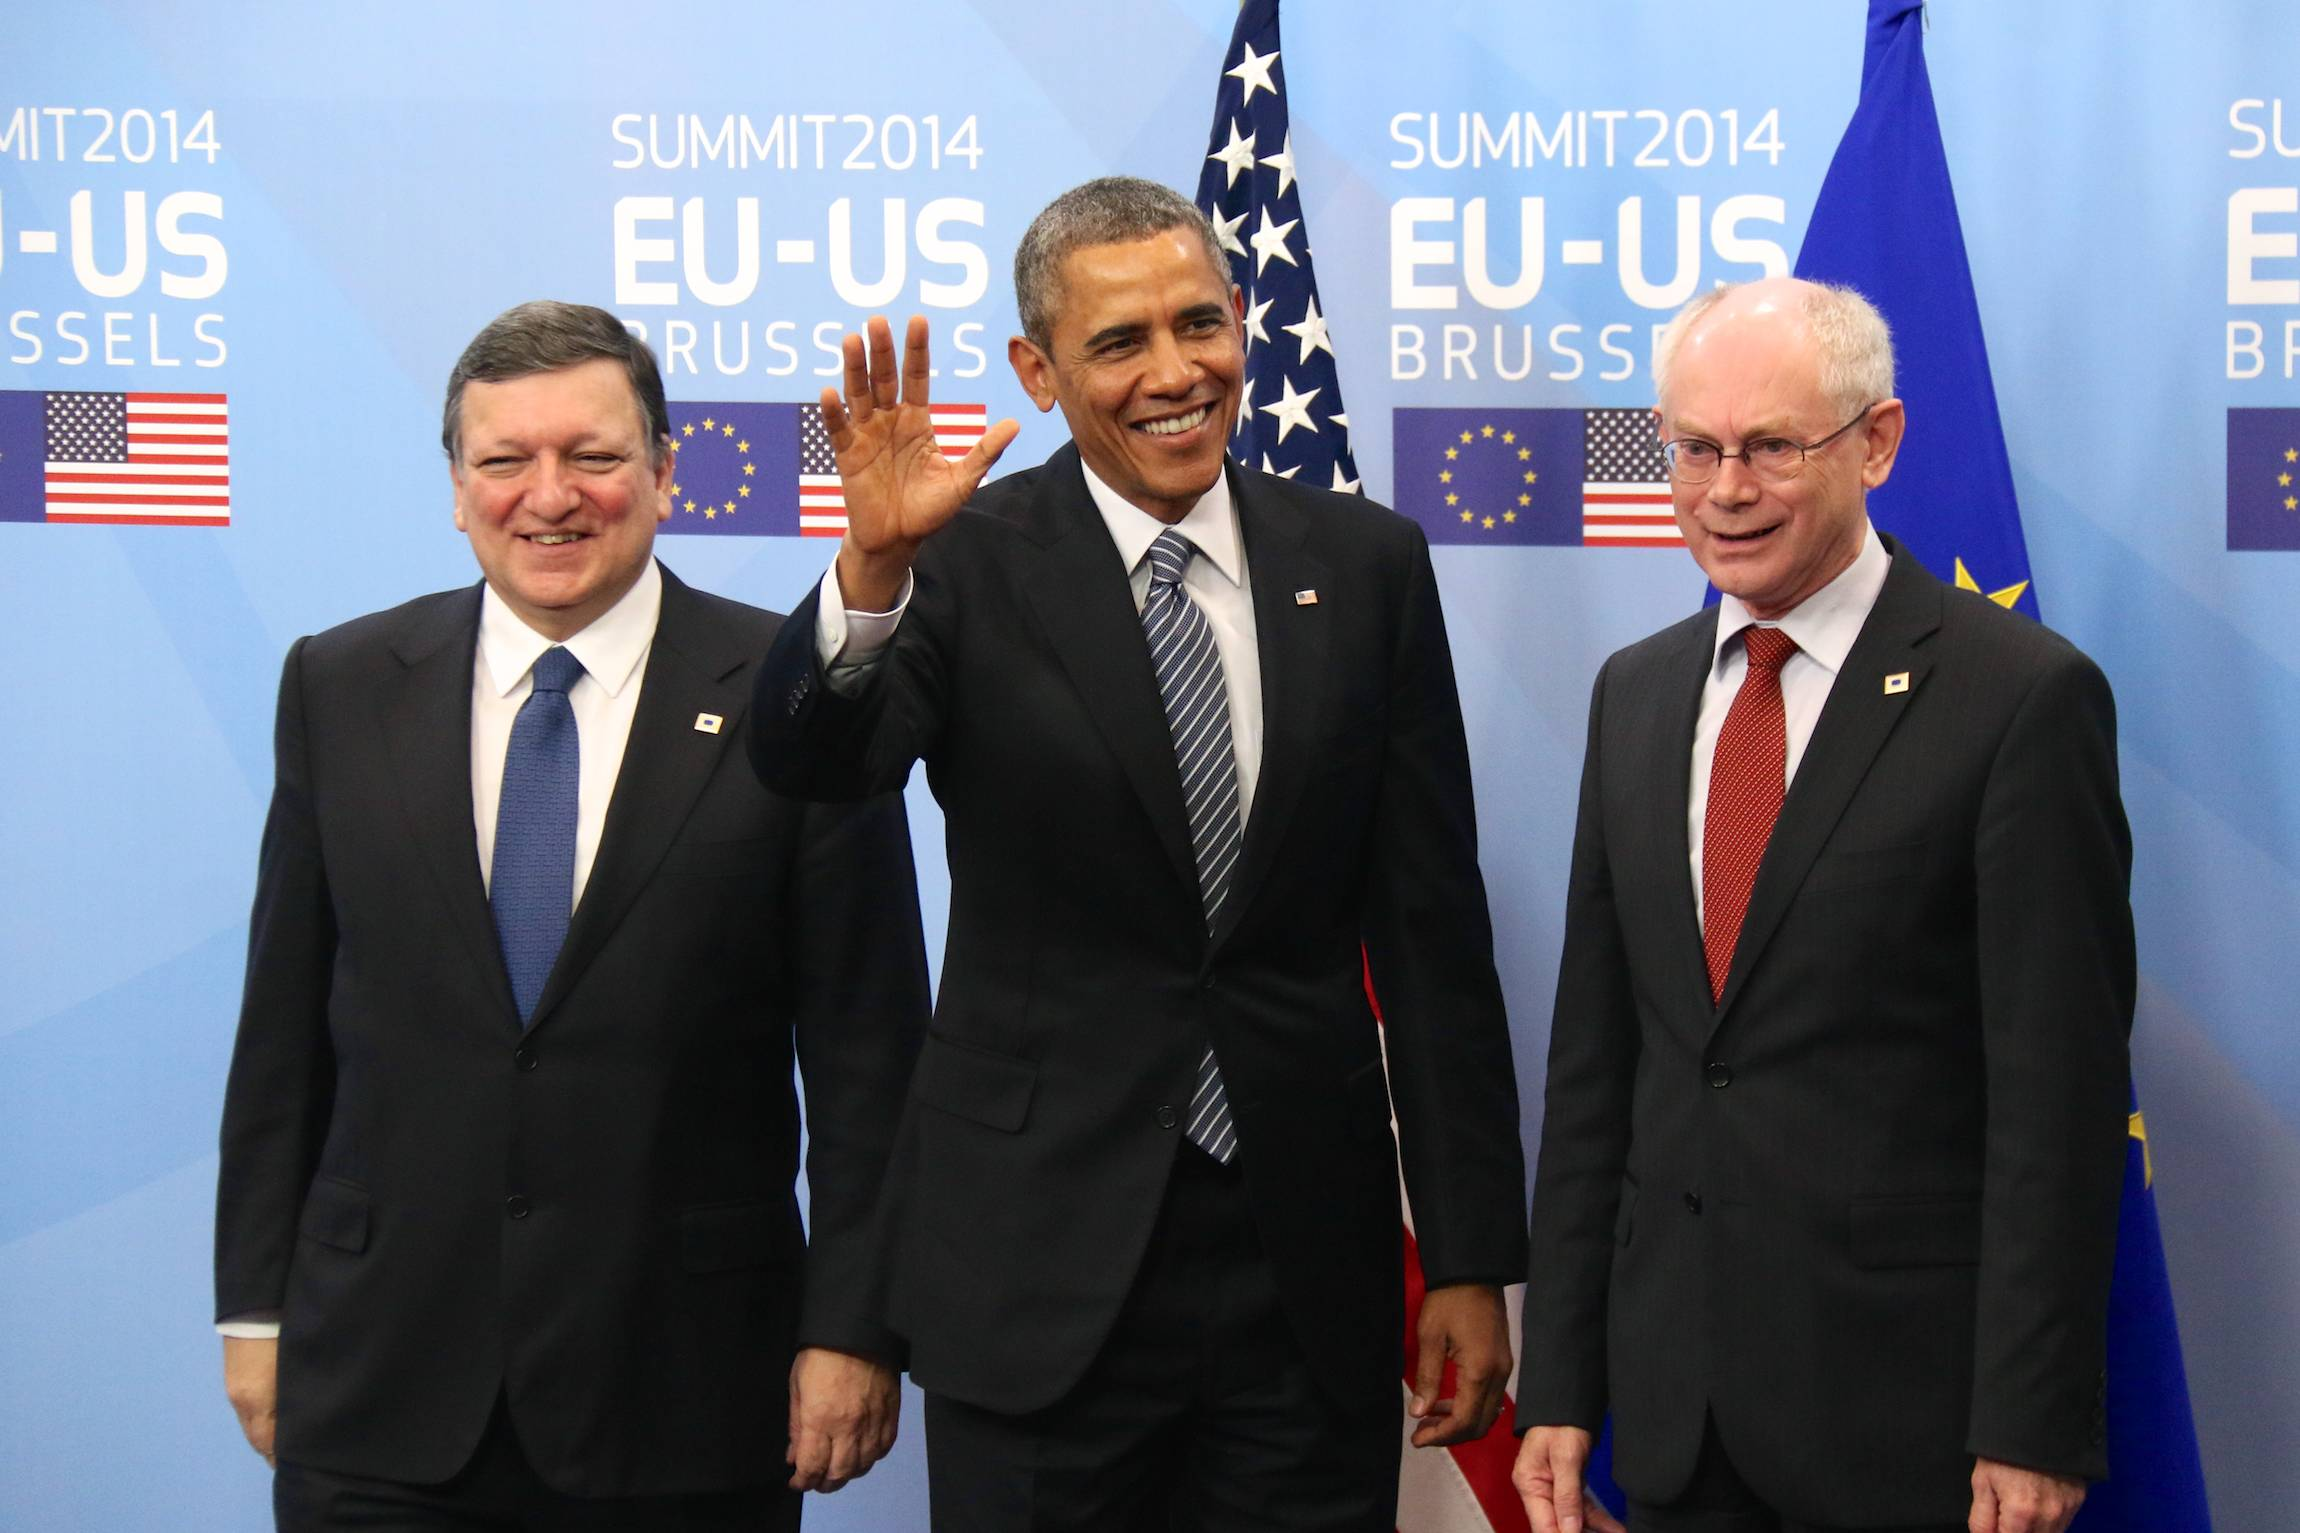 Barack Obama greets a crowd of waiting journalists ahead of the EU-US-Summit in Brussels, Belgium, March 26, 2014. He was welcomed by European Commission President José Manuel Barroso (left) and the president of the European Council, Herman van Rompuy.